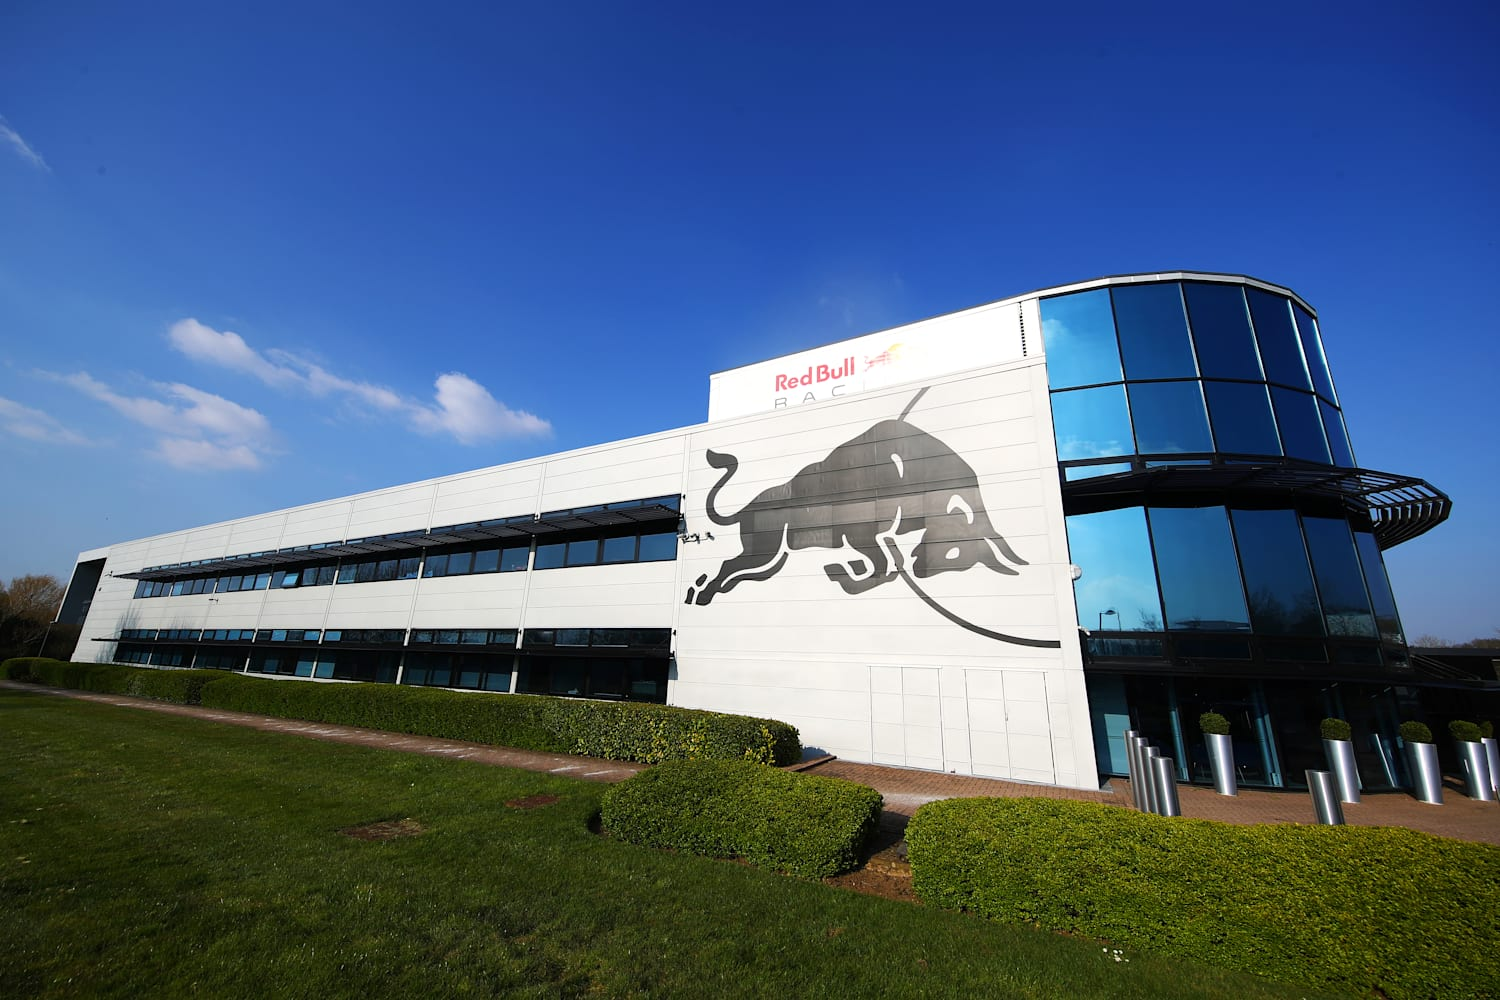 Back To The Red Bull Racing Factory